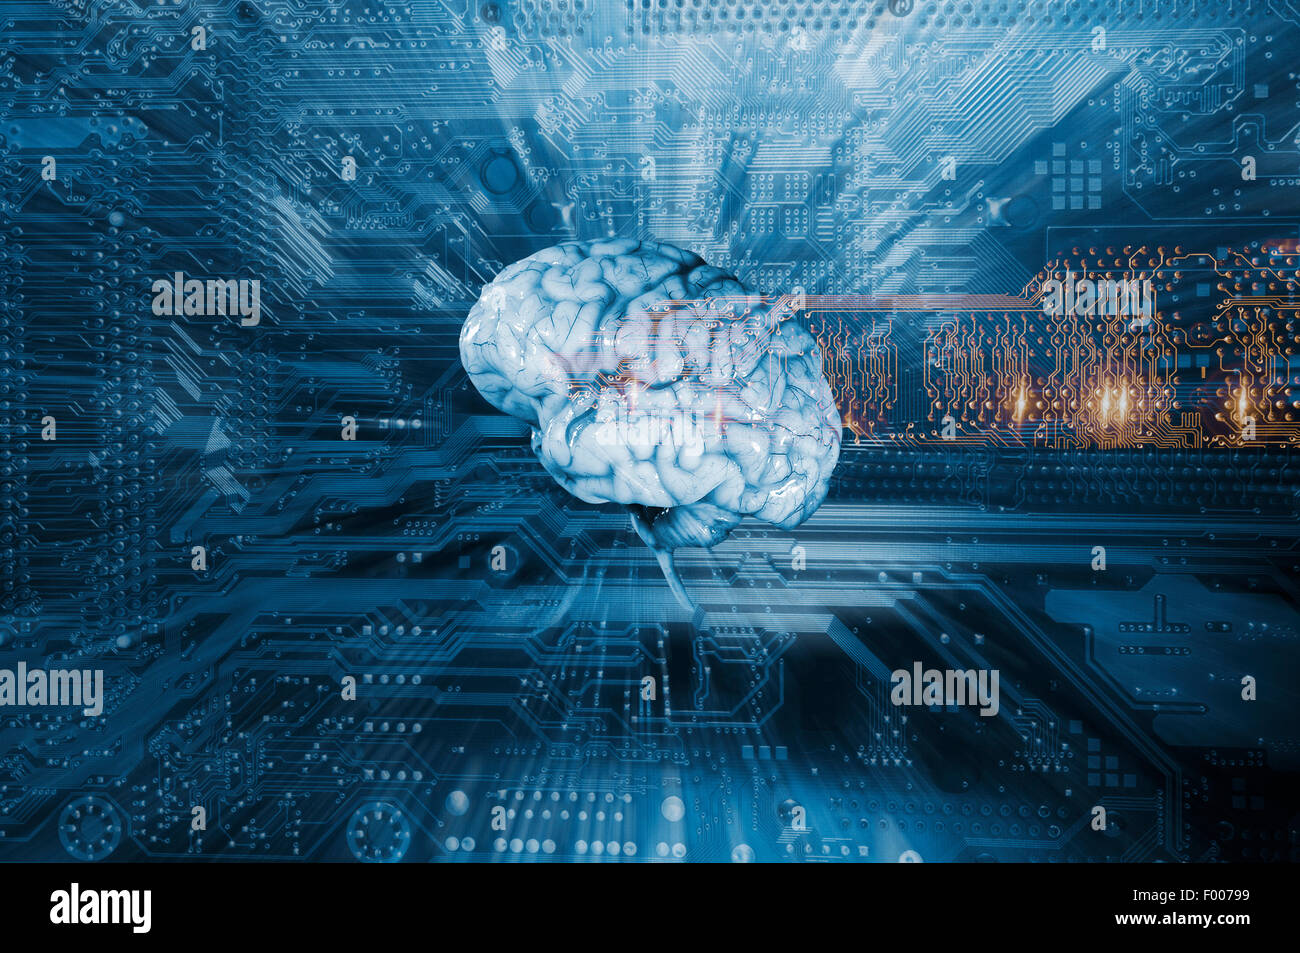 artificial intelligence, human brain and computers - Stock Image